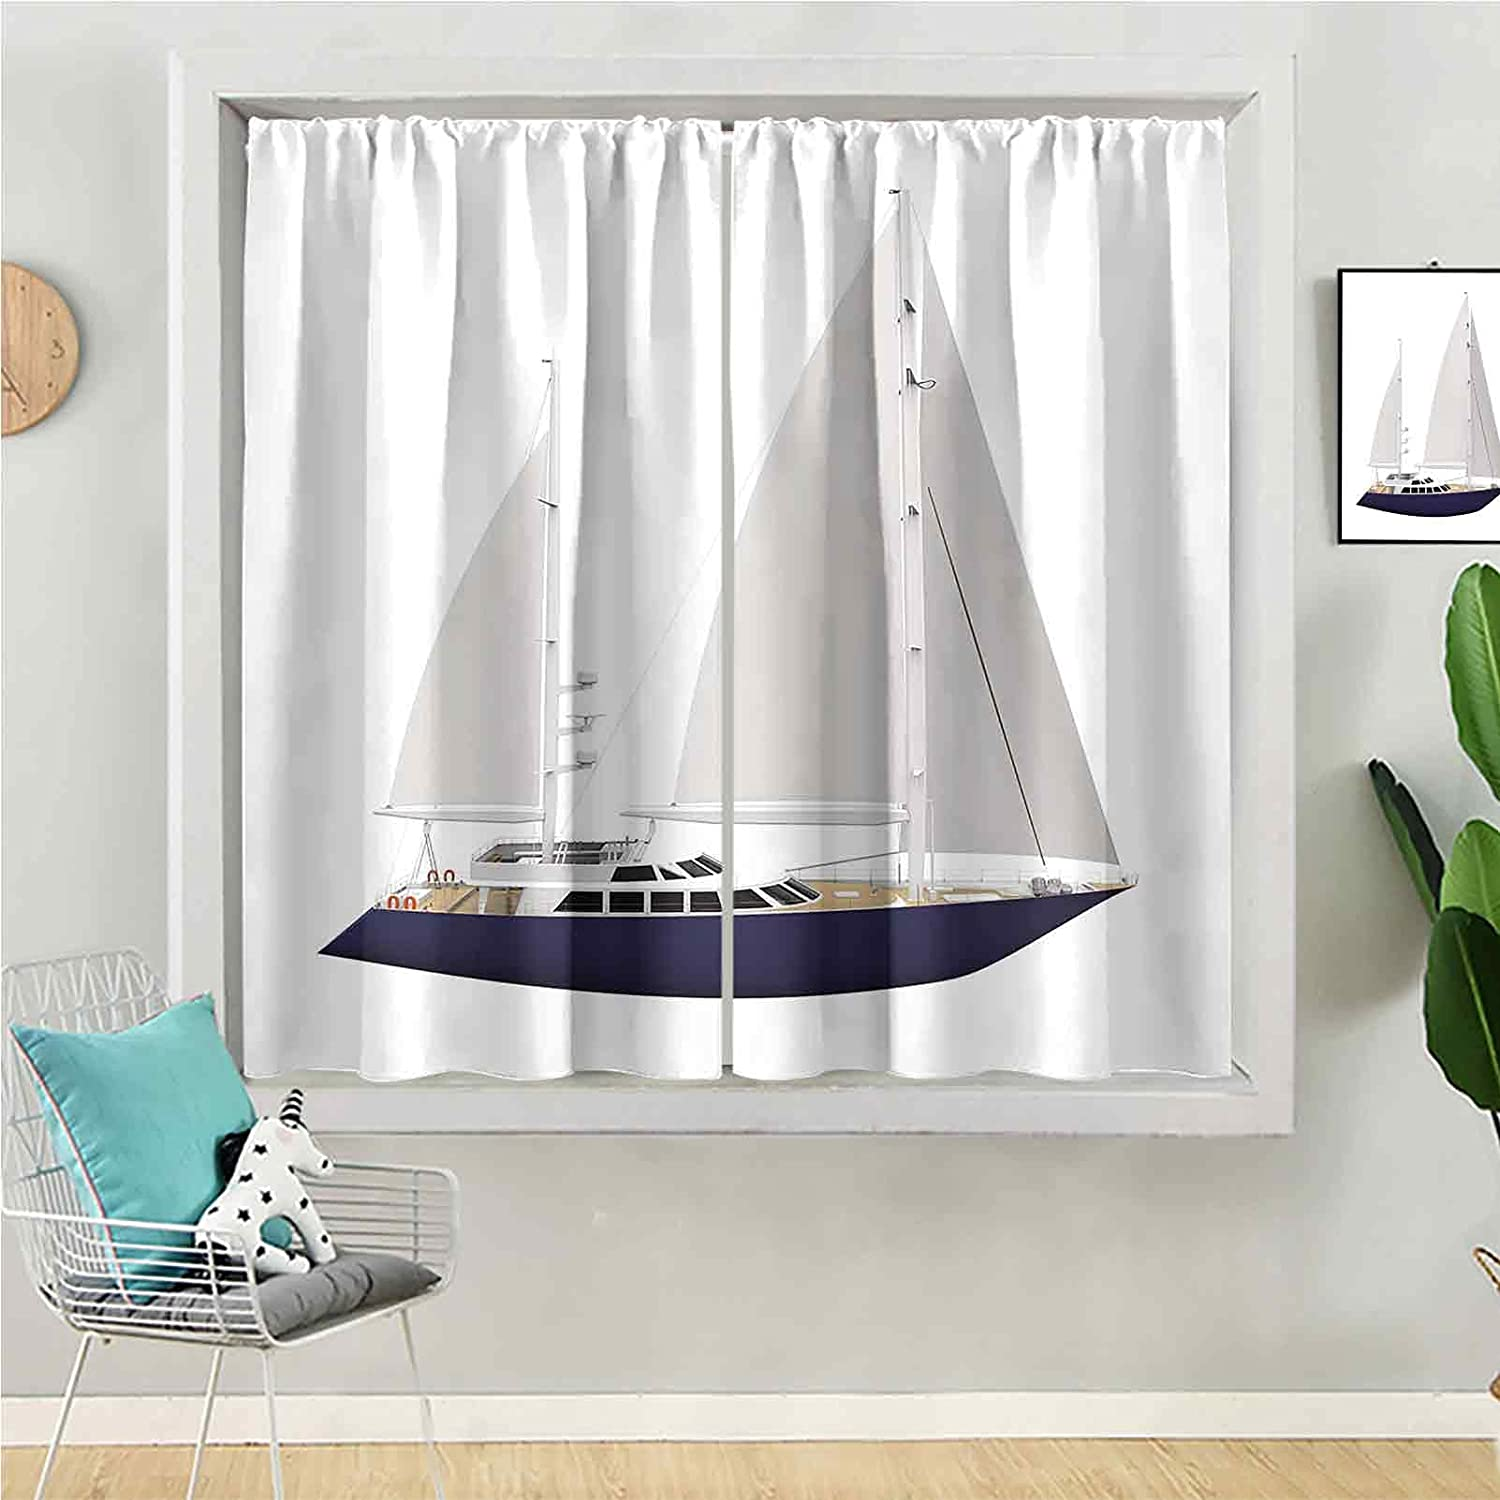 Max 59% OFF Blackout Curtain Discount is also underway 72 inches Long Window Kids Panel Be for